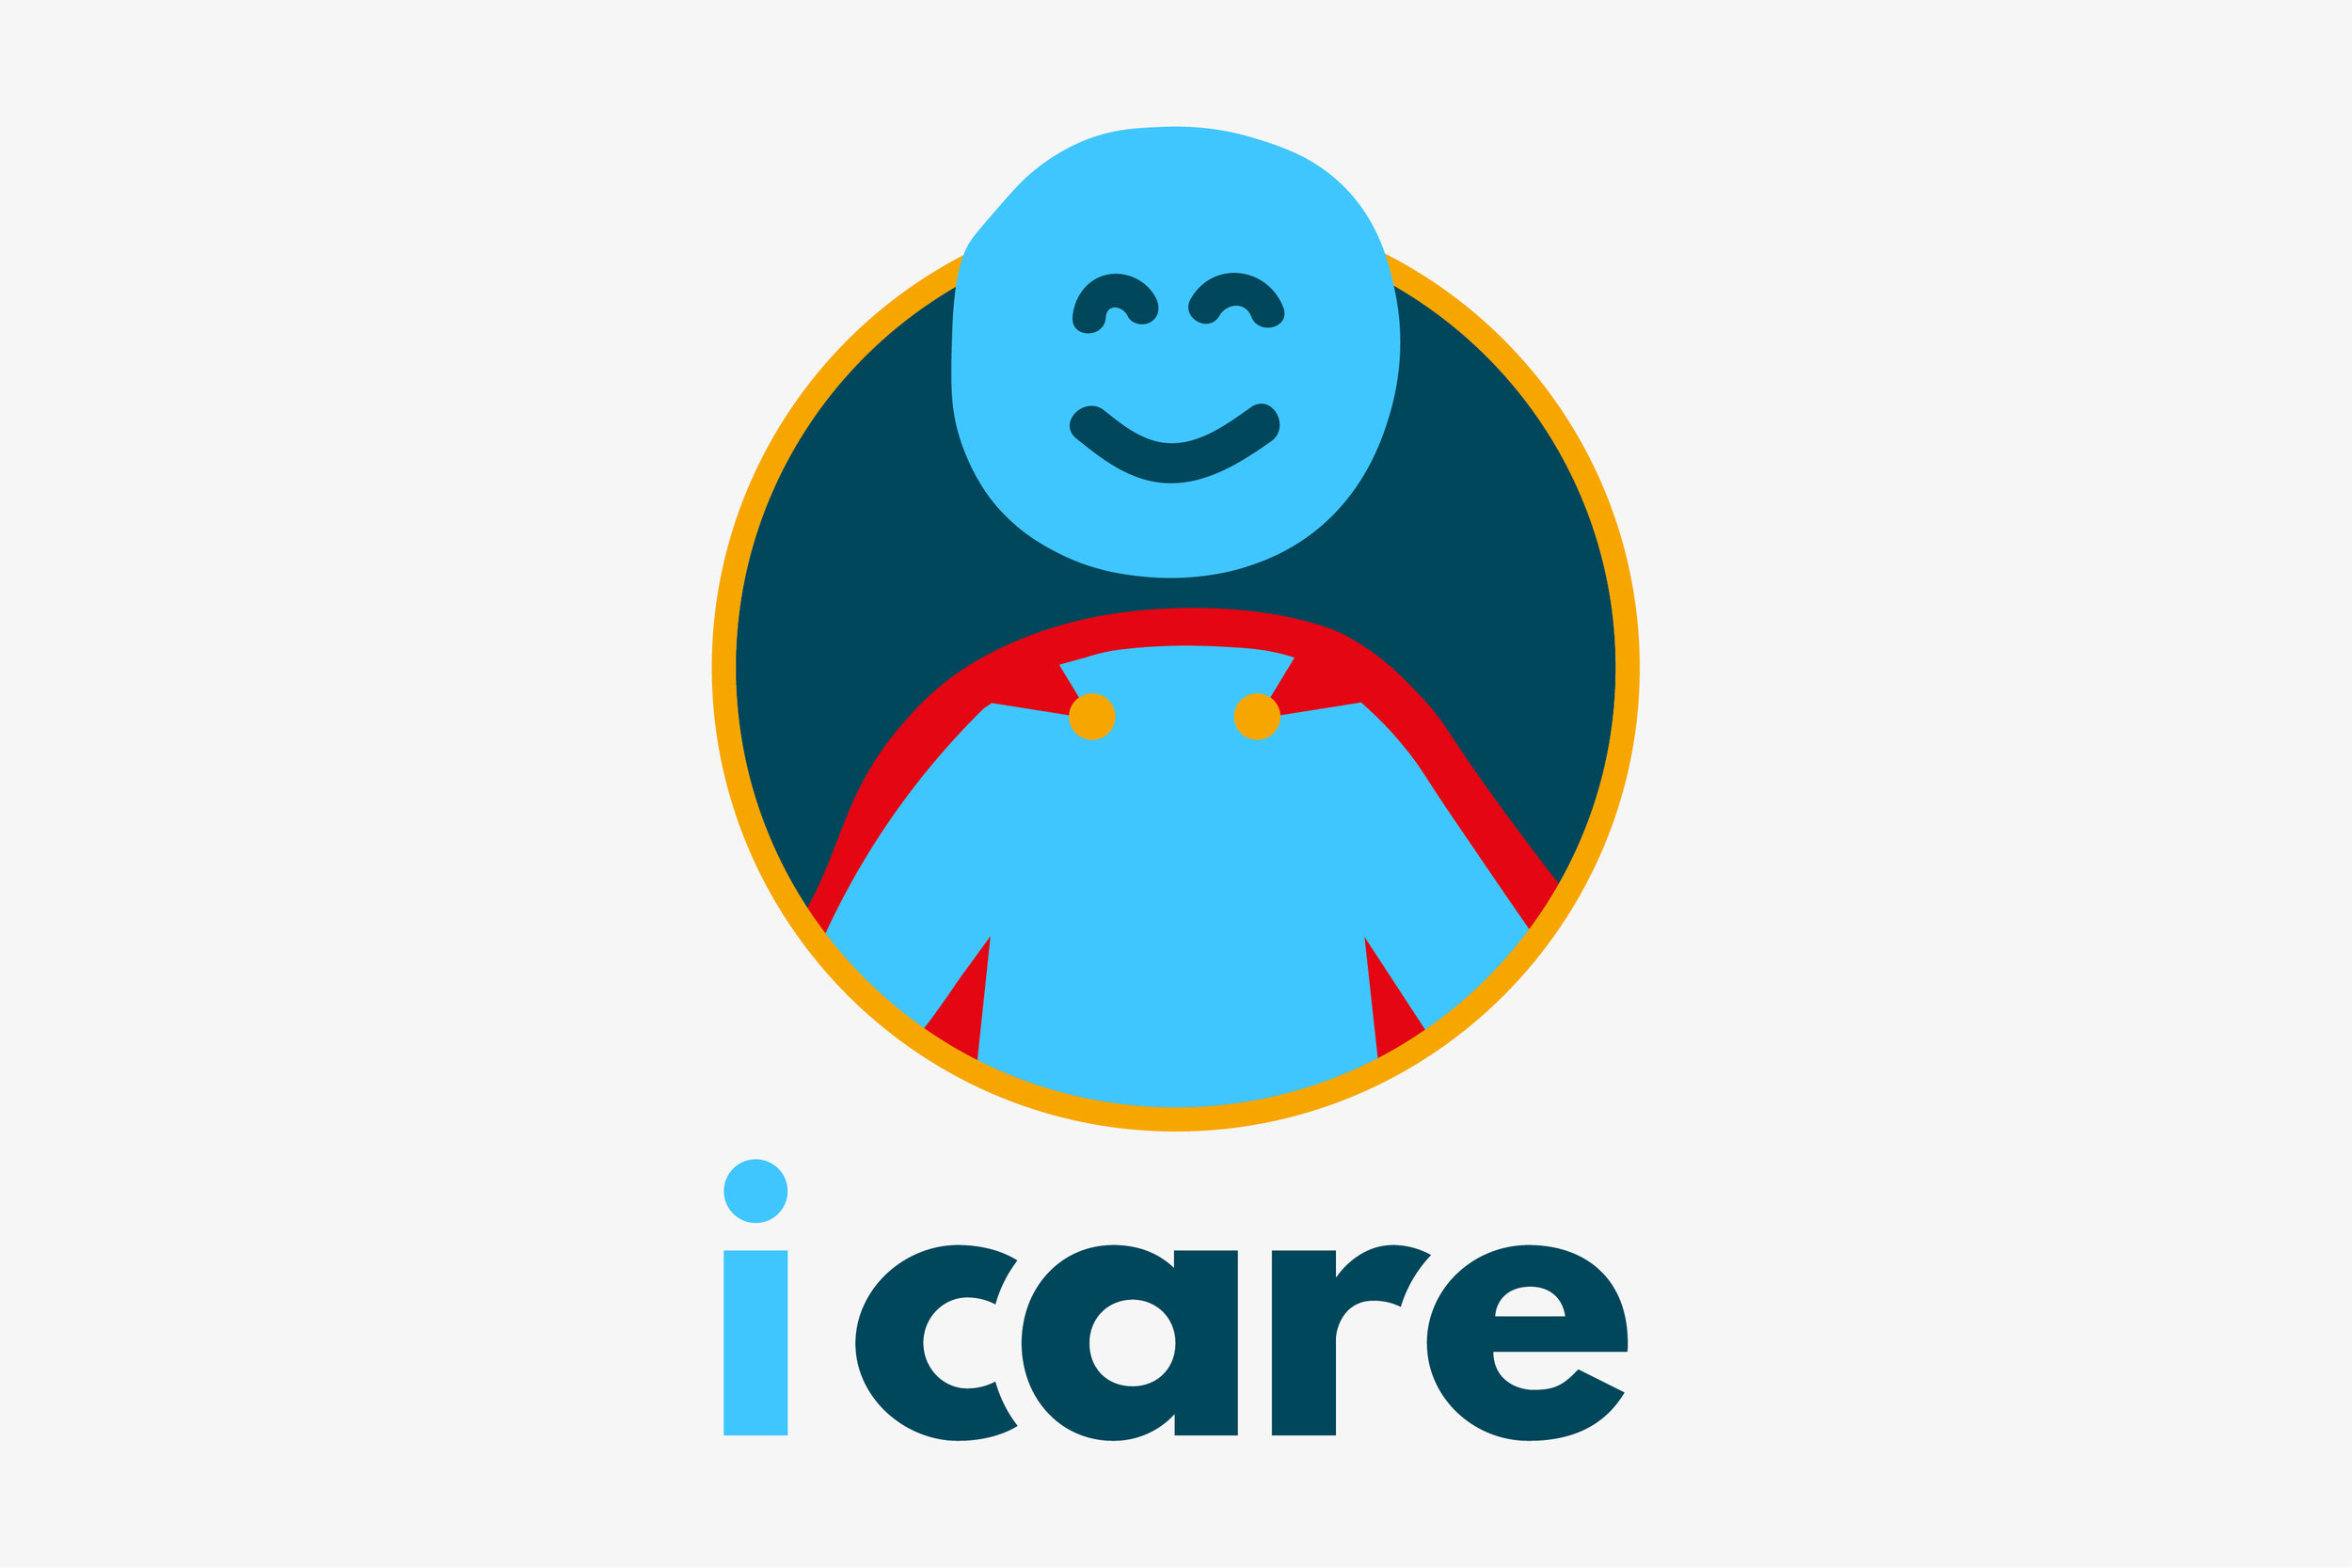 dock-i-care-logo-website-30x20cm-01.jpg